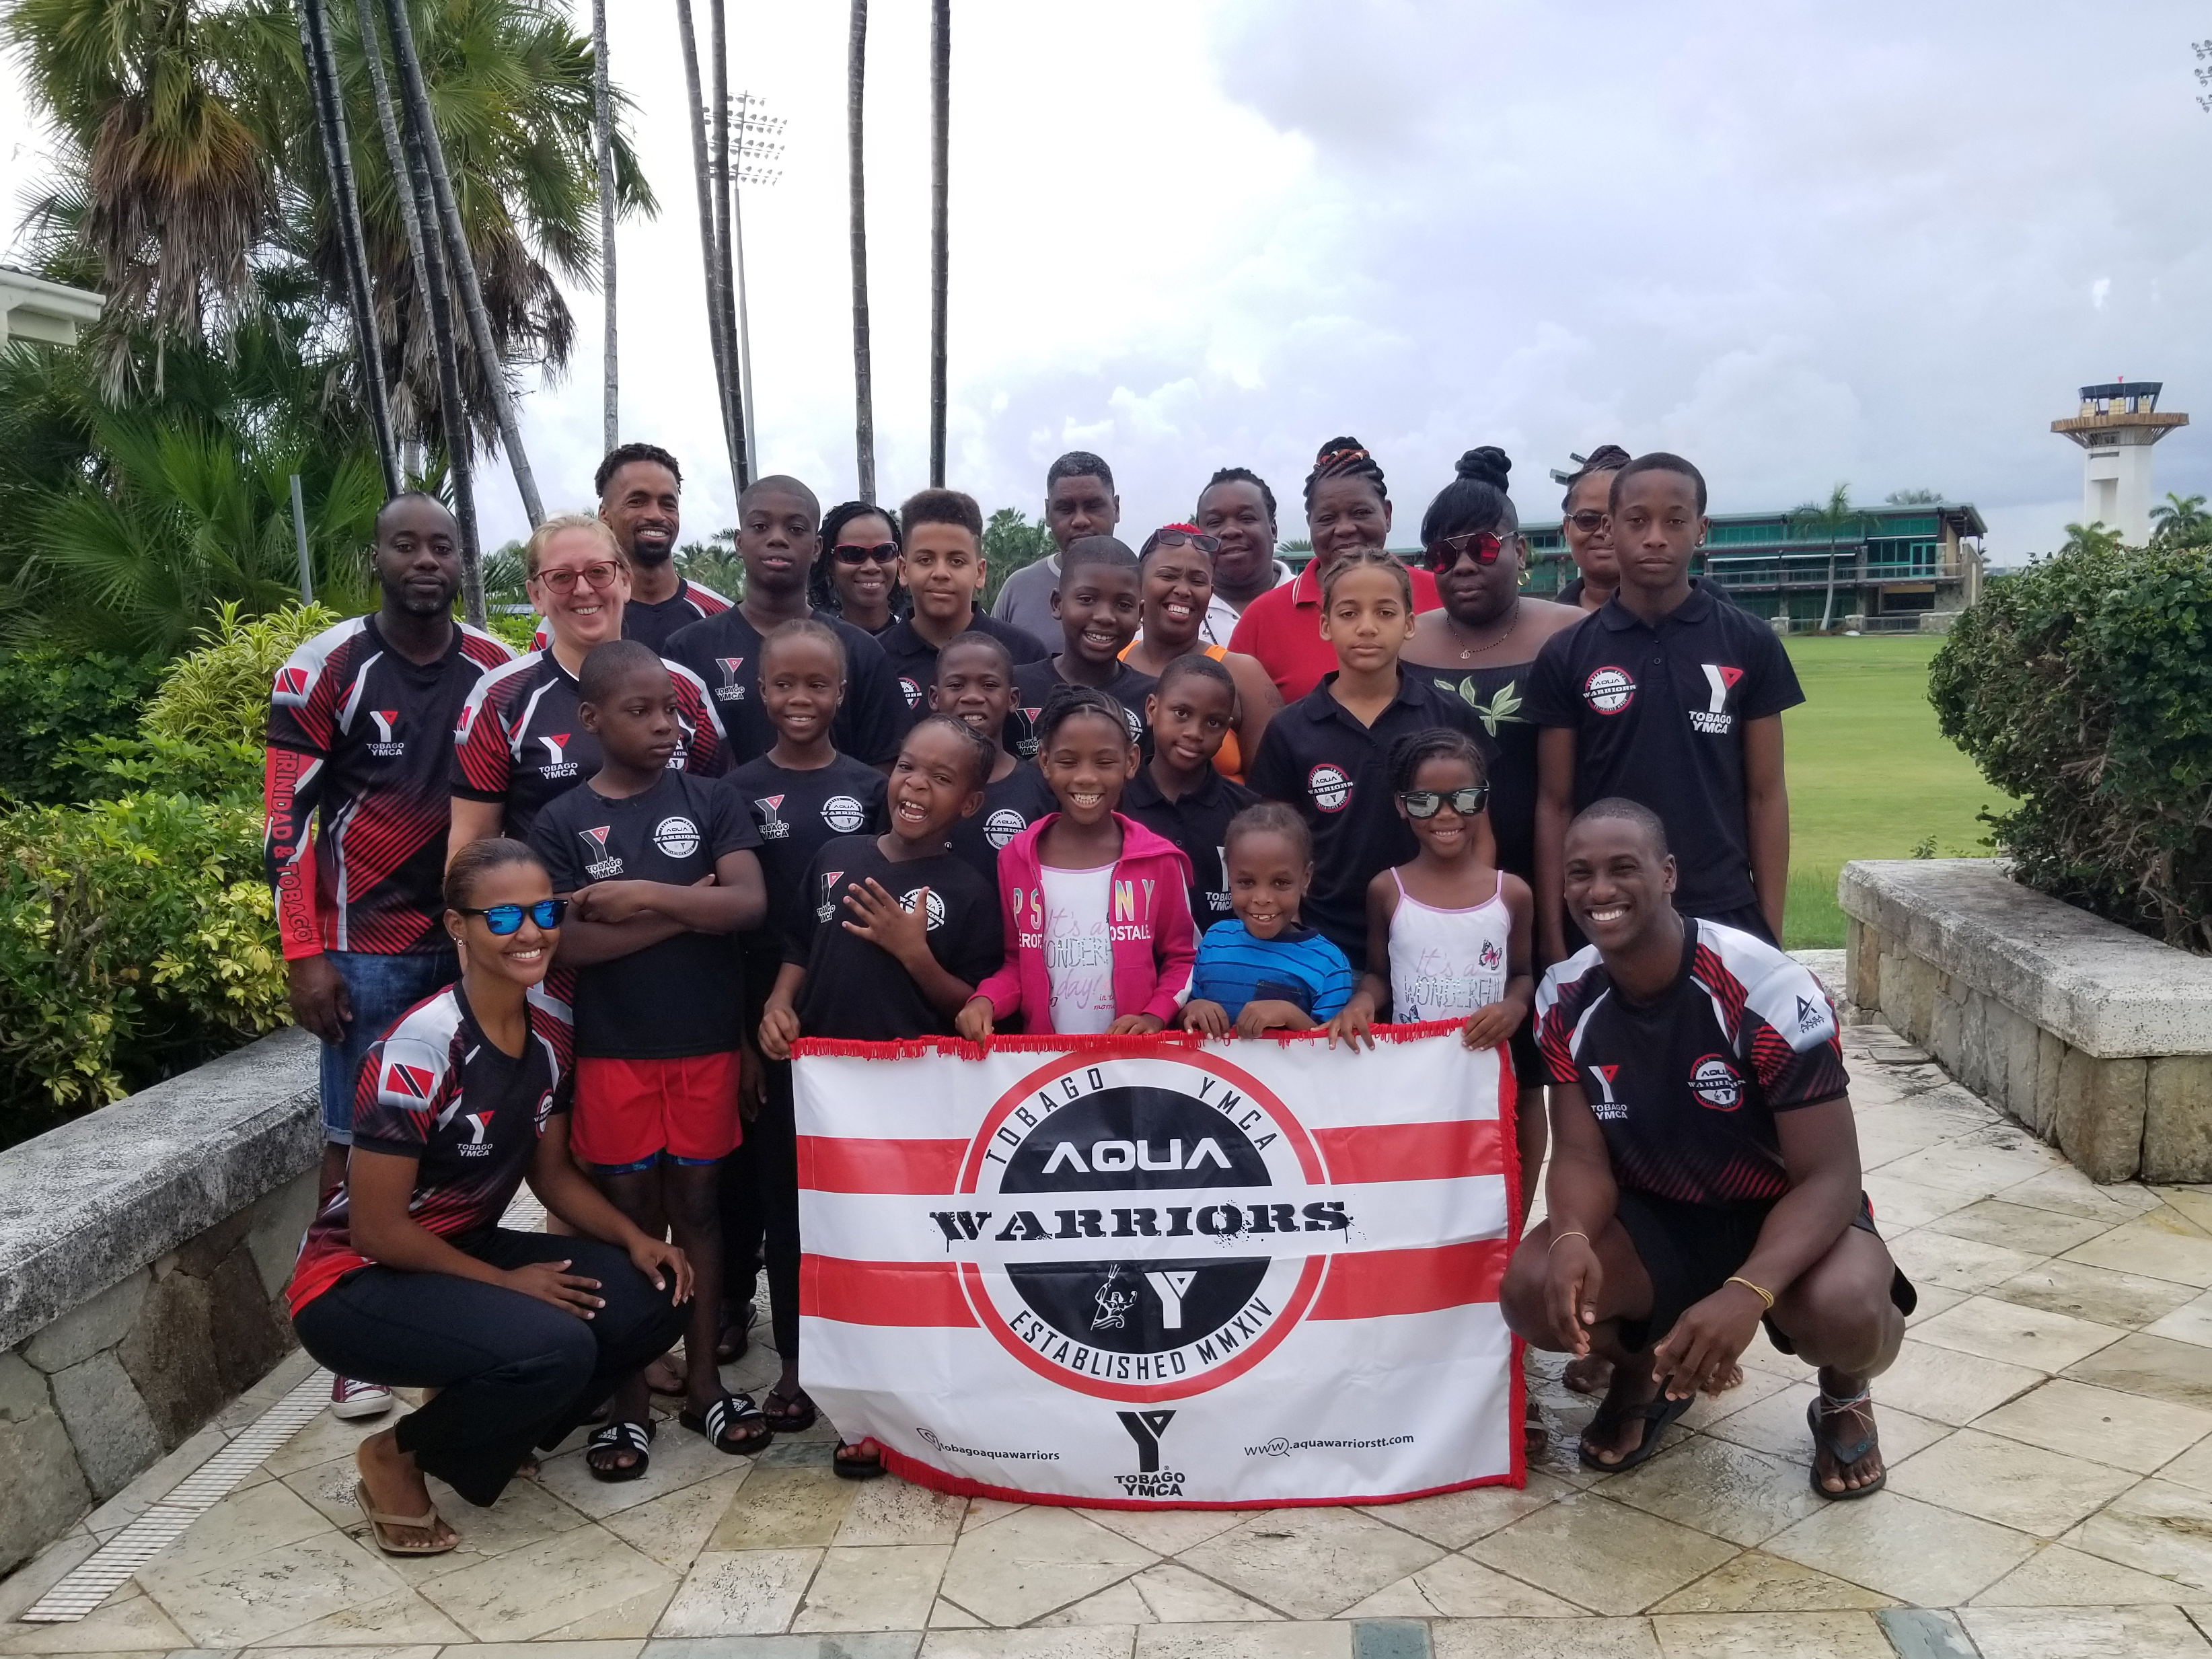 Tobago YMCA Aqua Warriors in Antigua